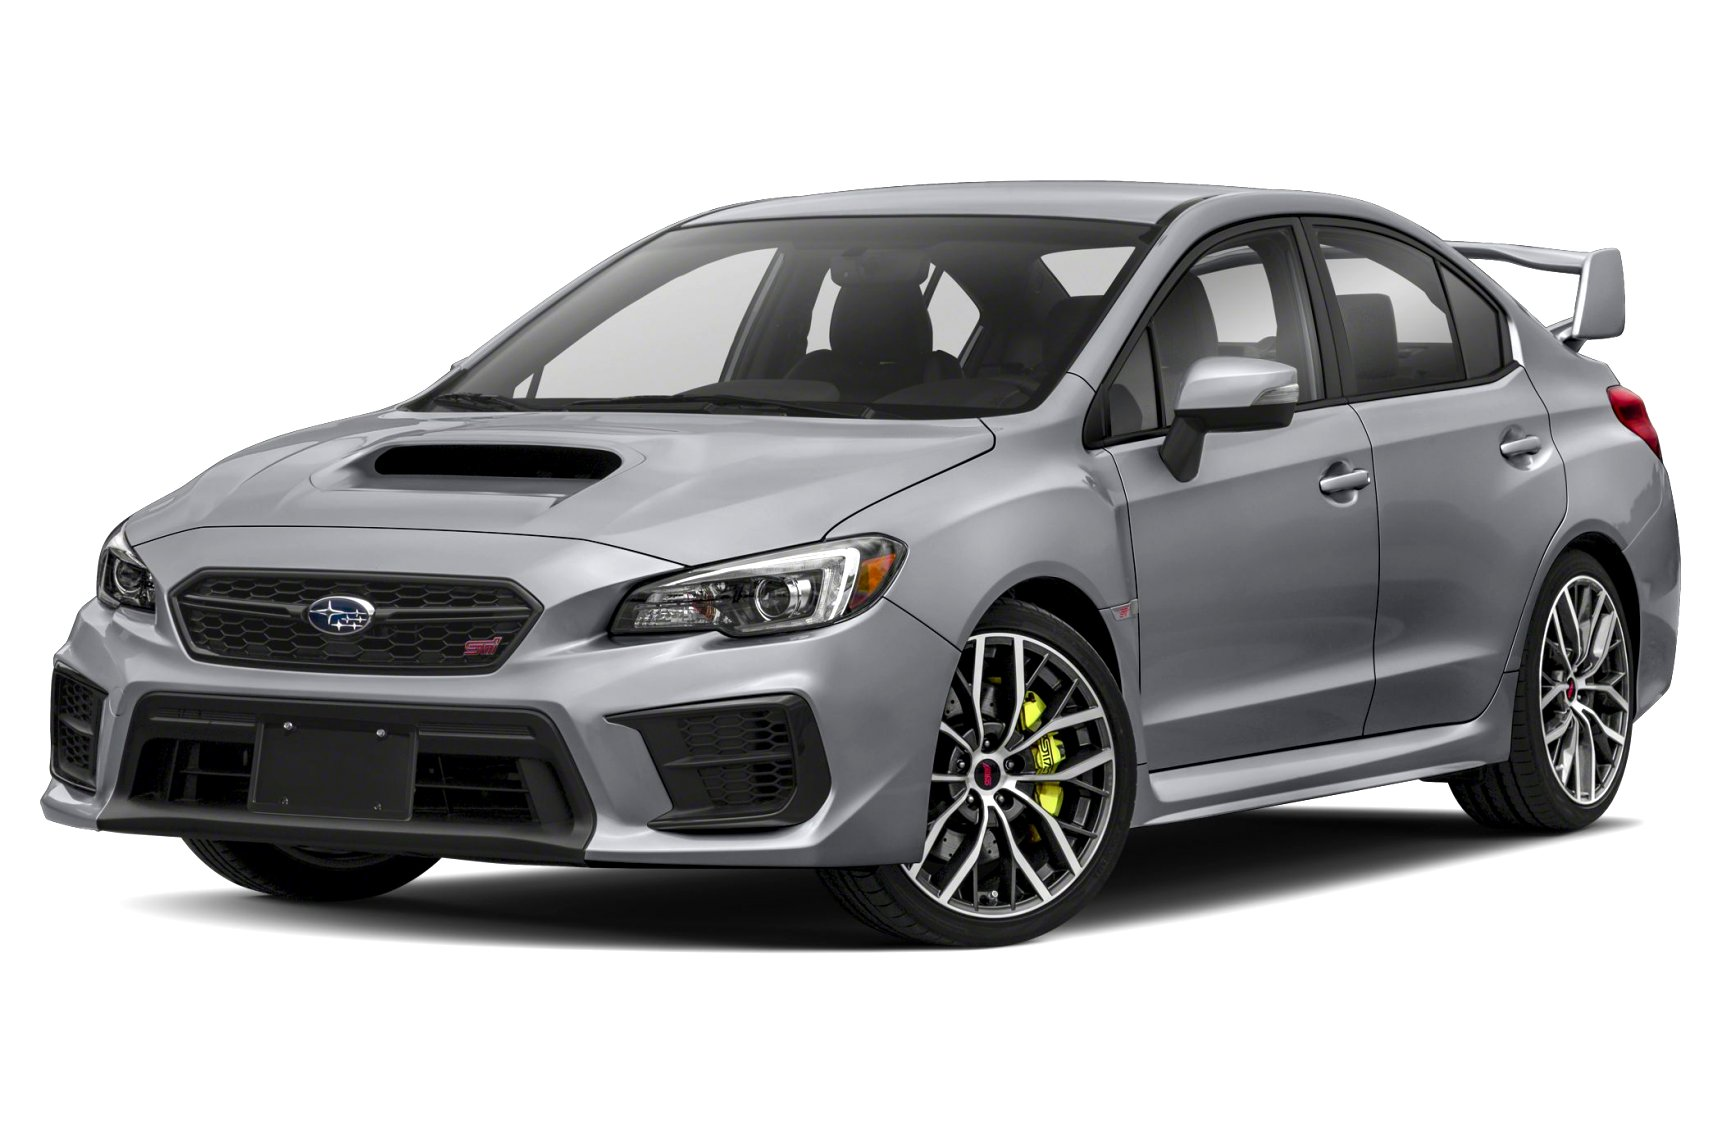 2020 subaru impreza specs Price and Release date